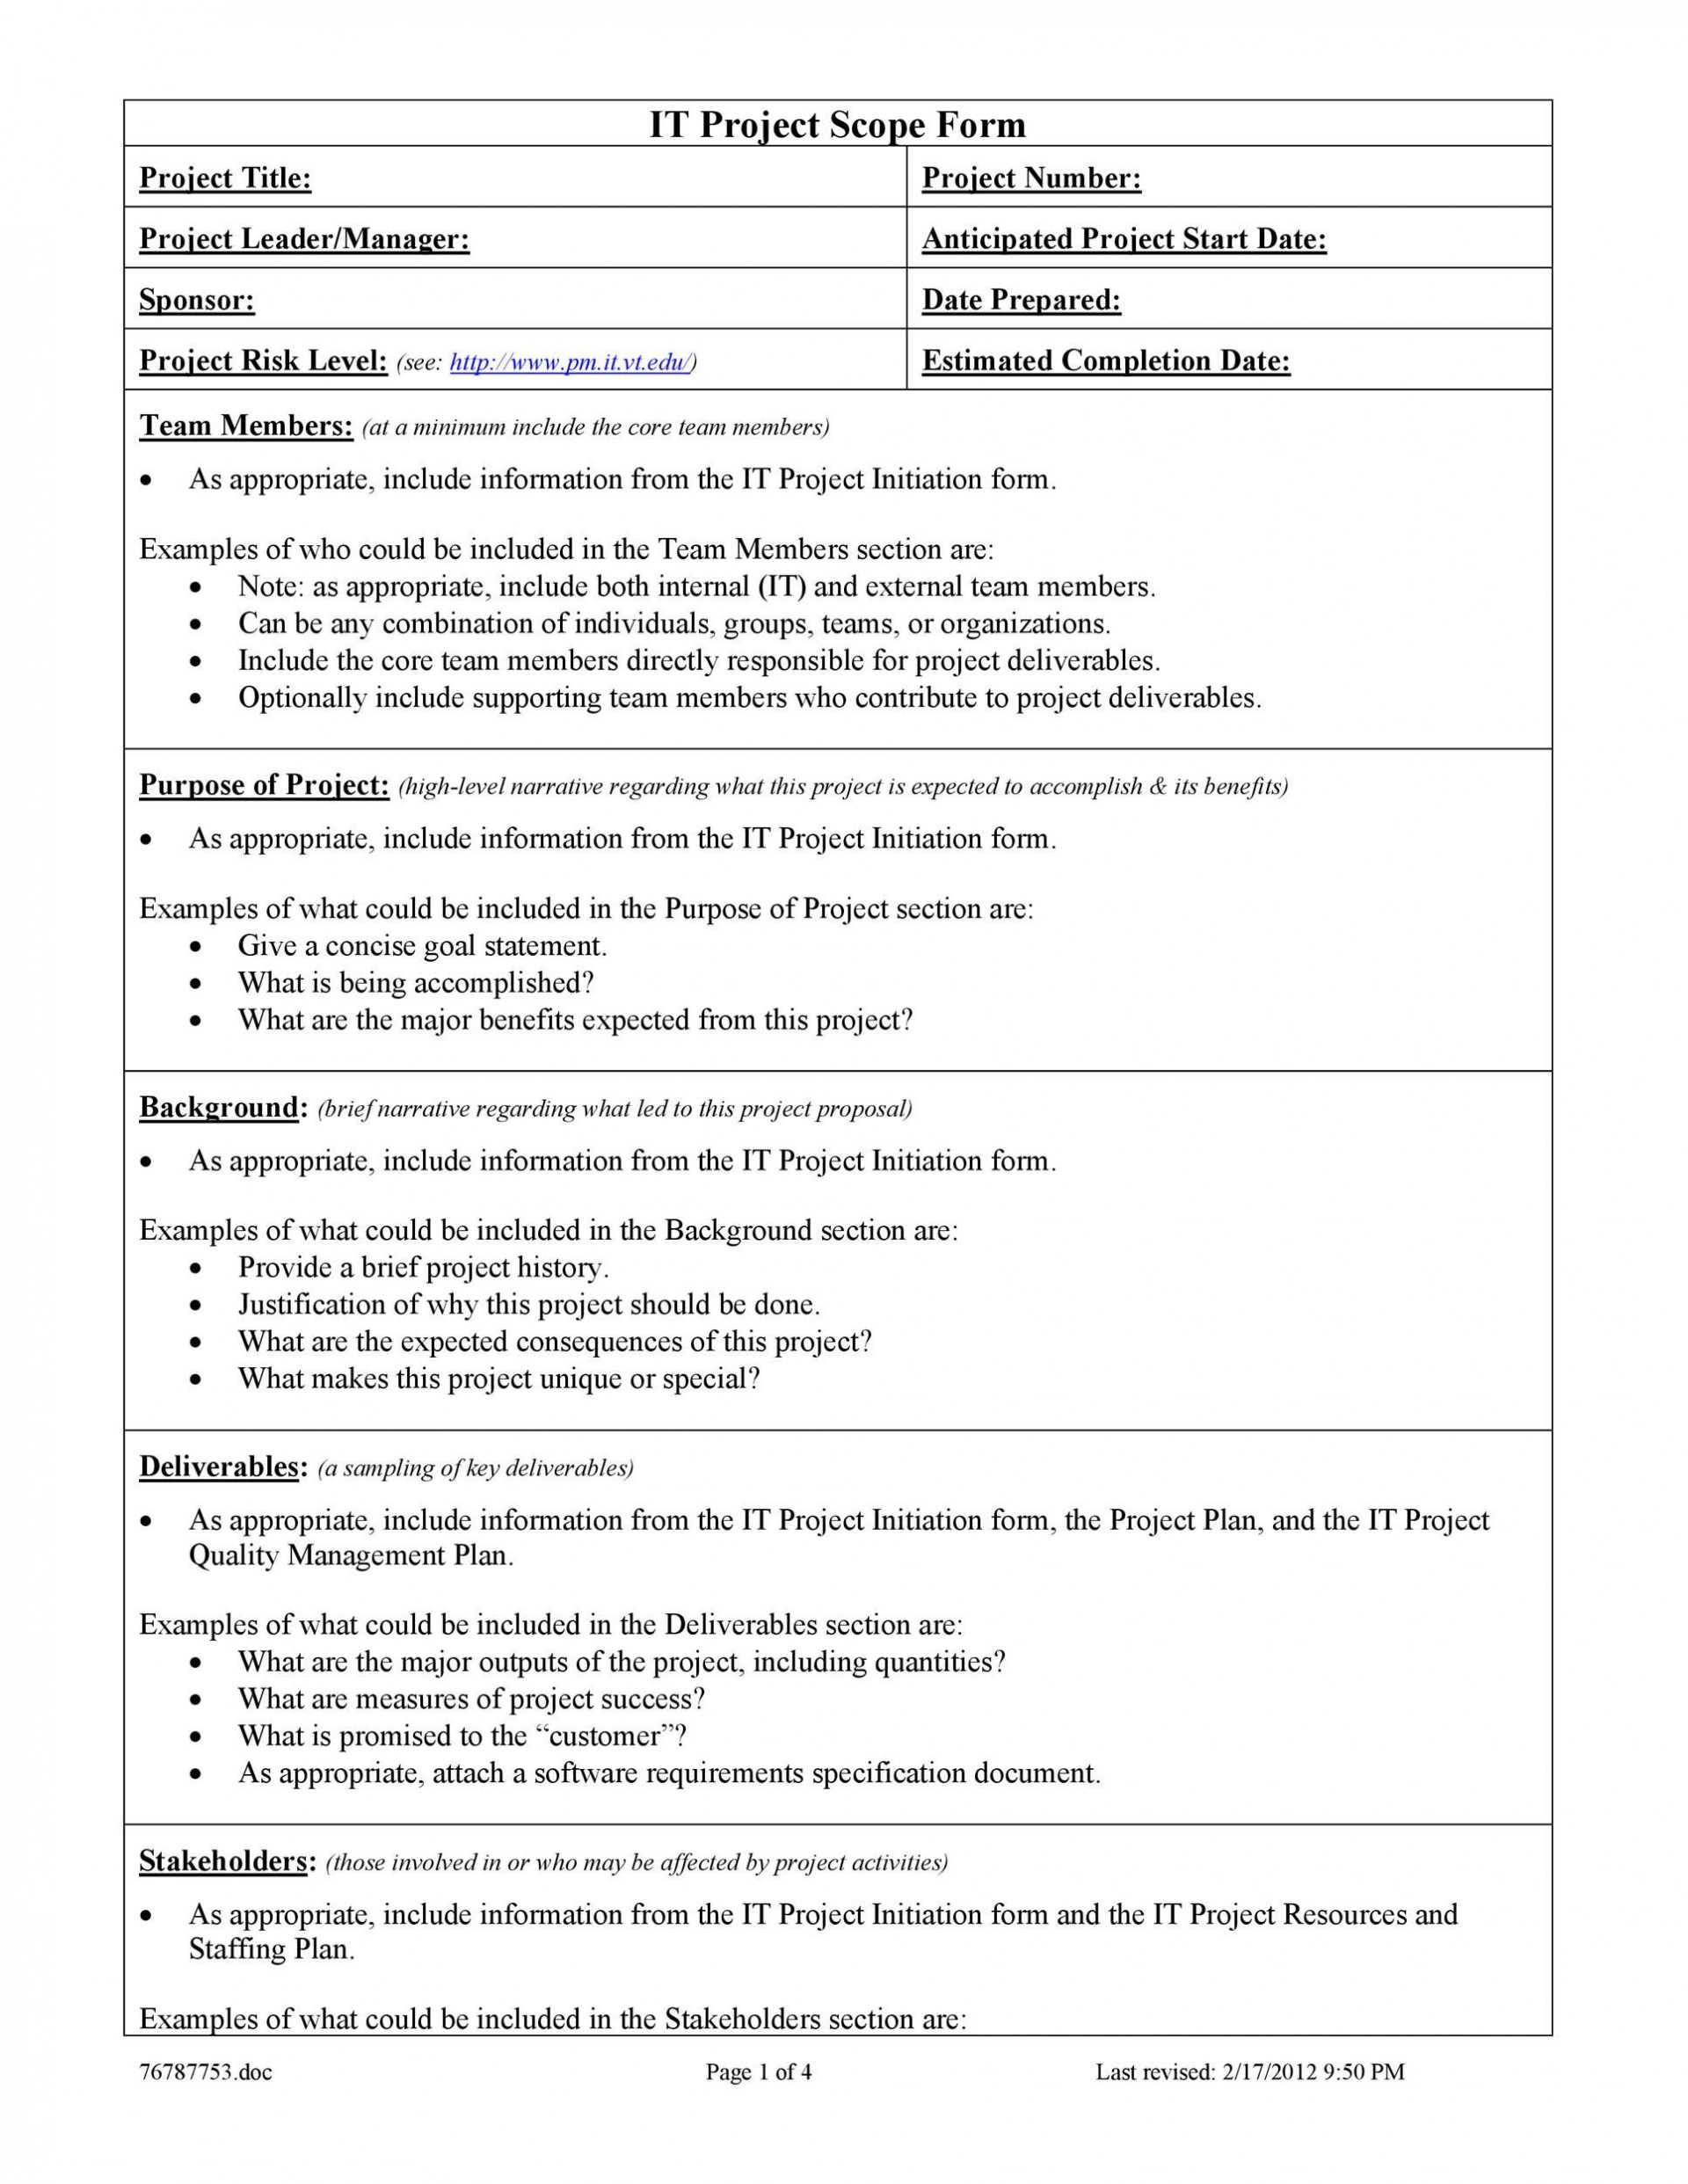 006 Shocking Project Scope Management Plan Template Free High Definition 1920